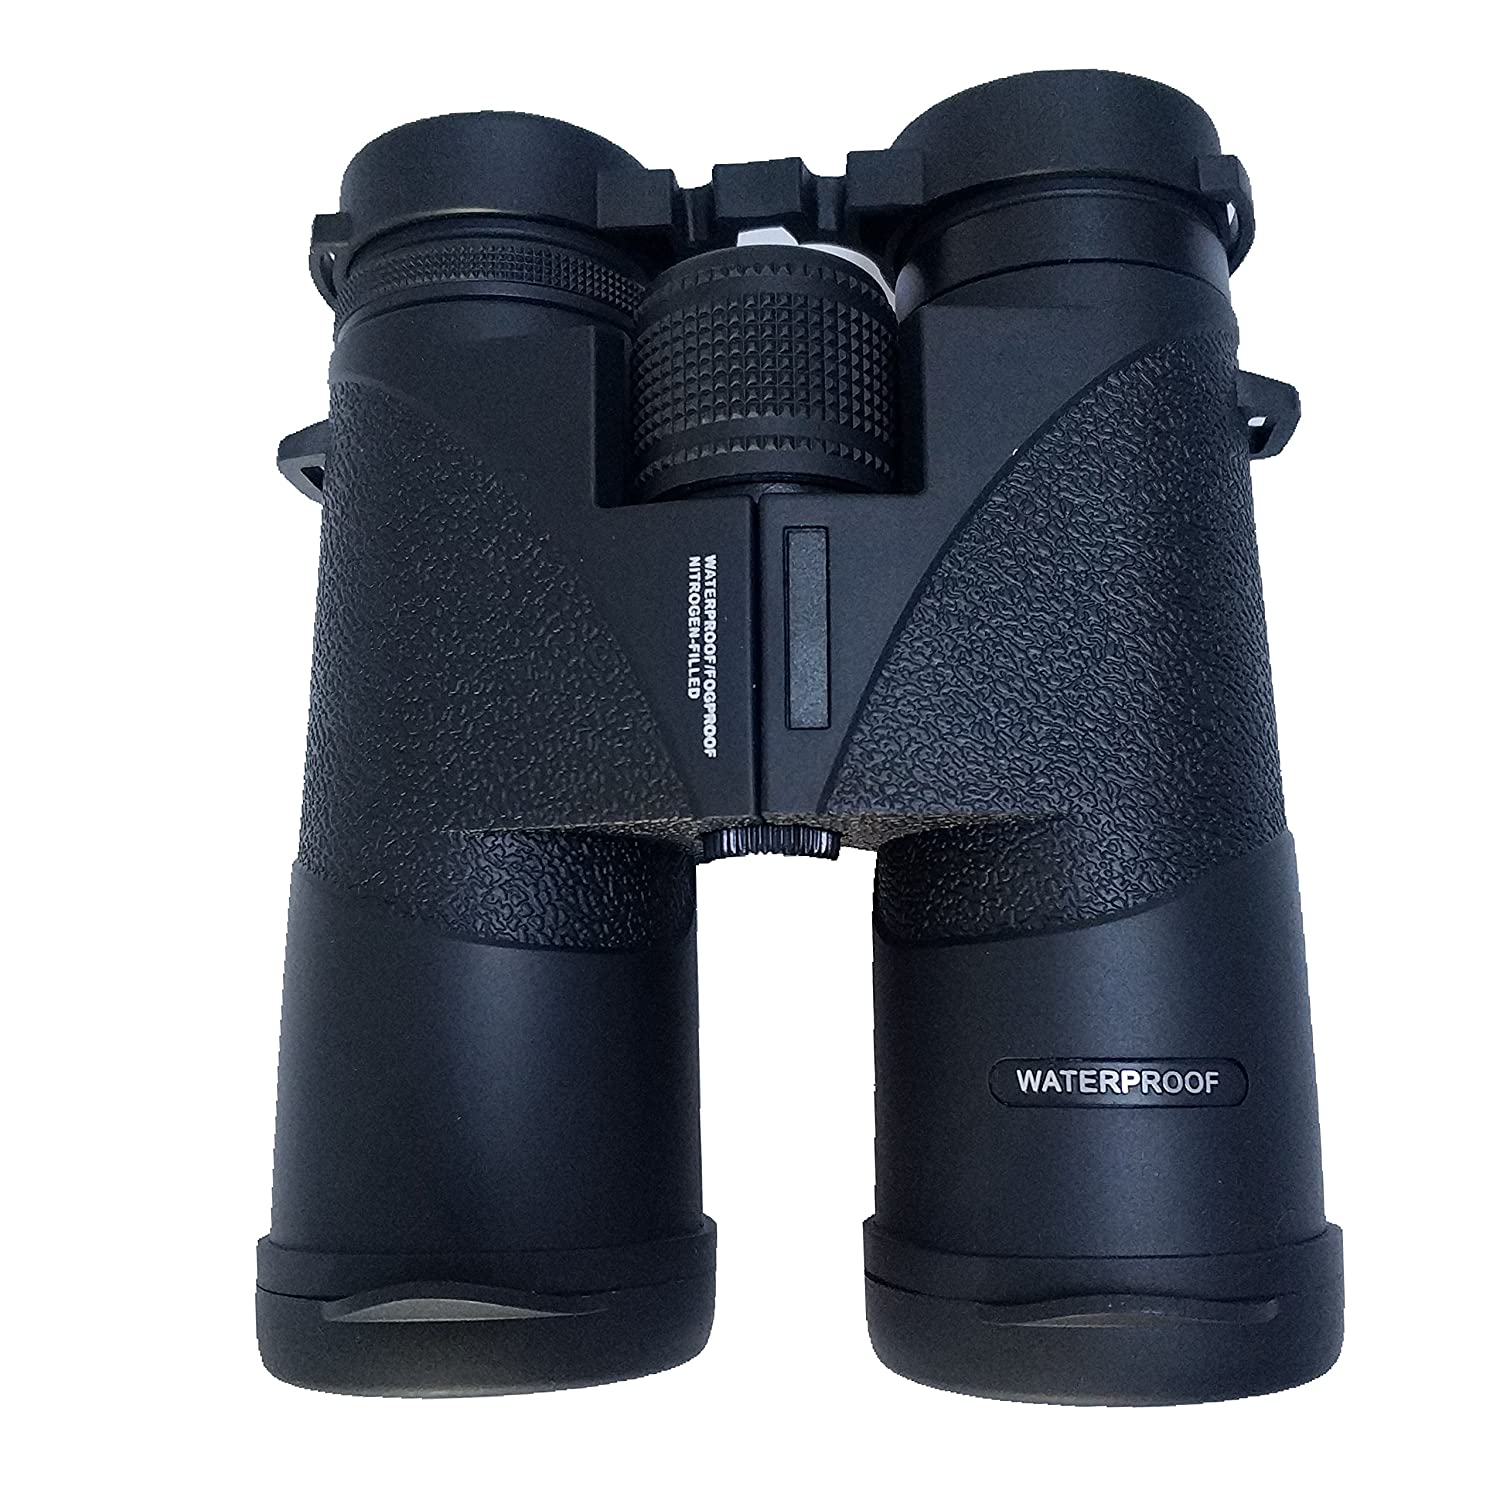 Songlin 10 x 42双眼鏡for Adults ,コンパクトfor Bird Watching、防水。 B076PZGV6K